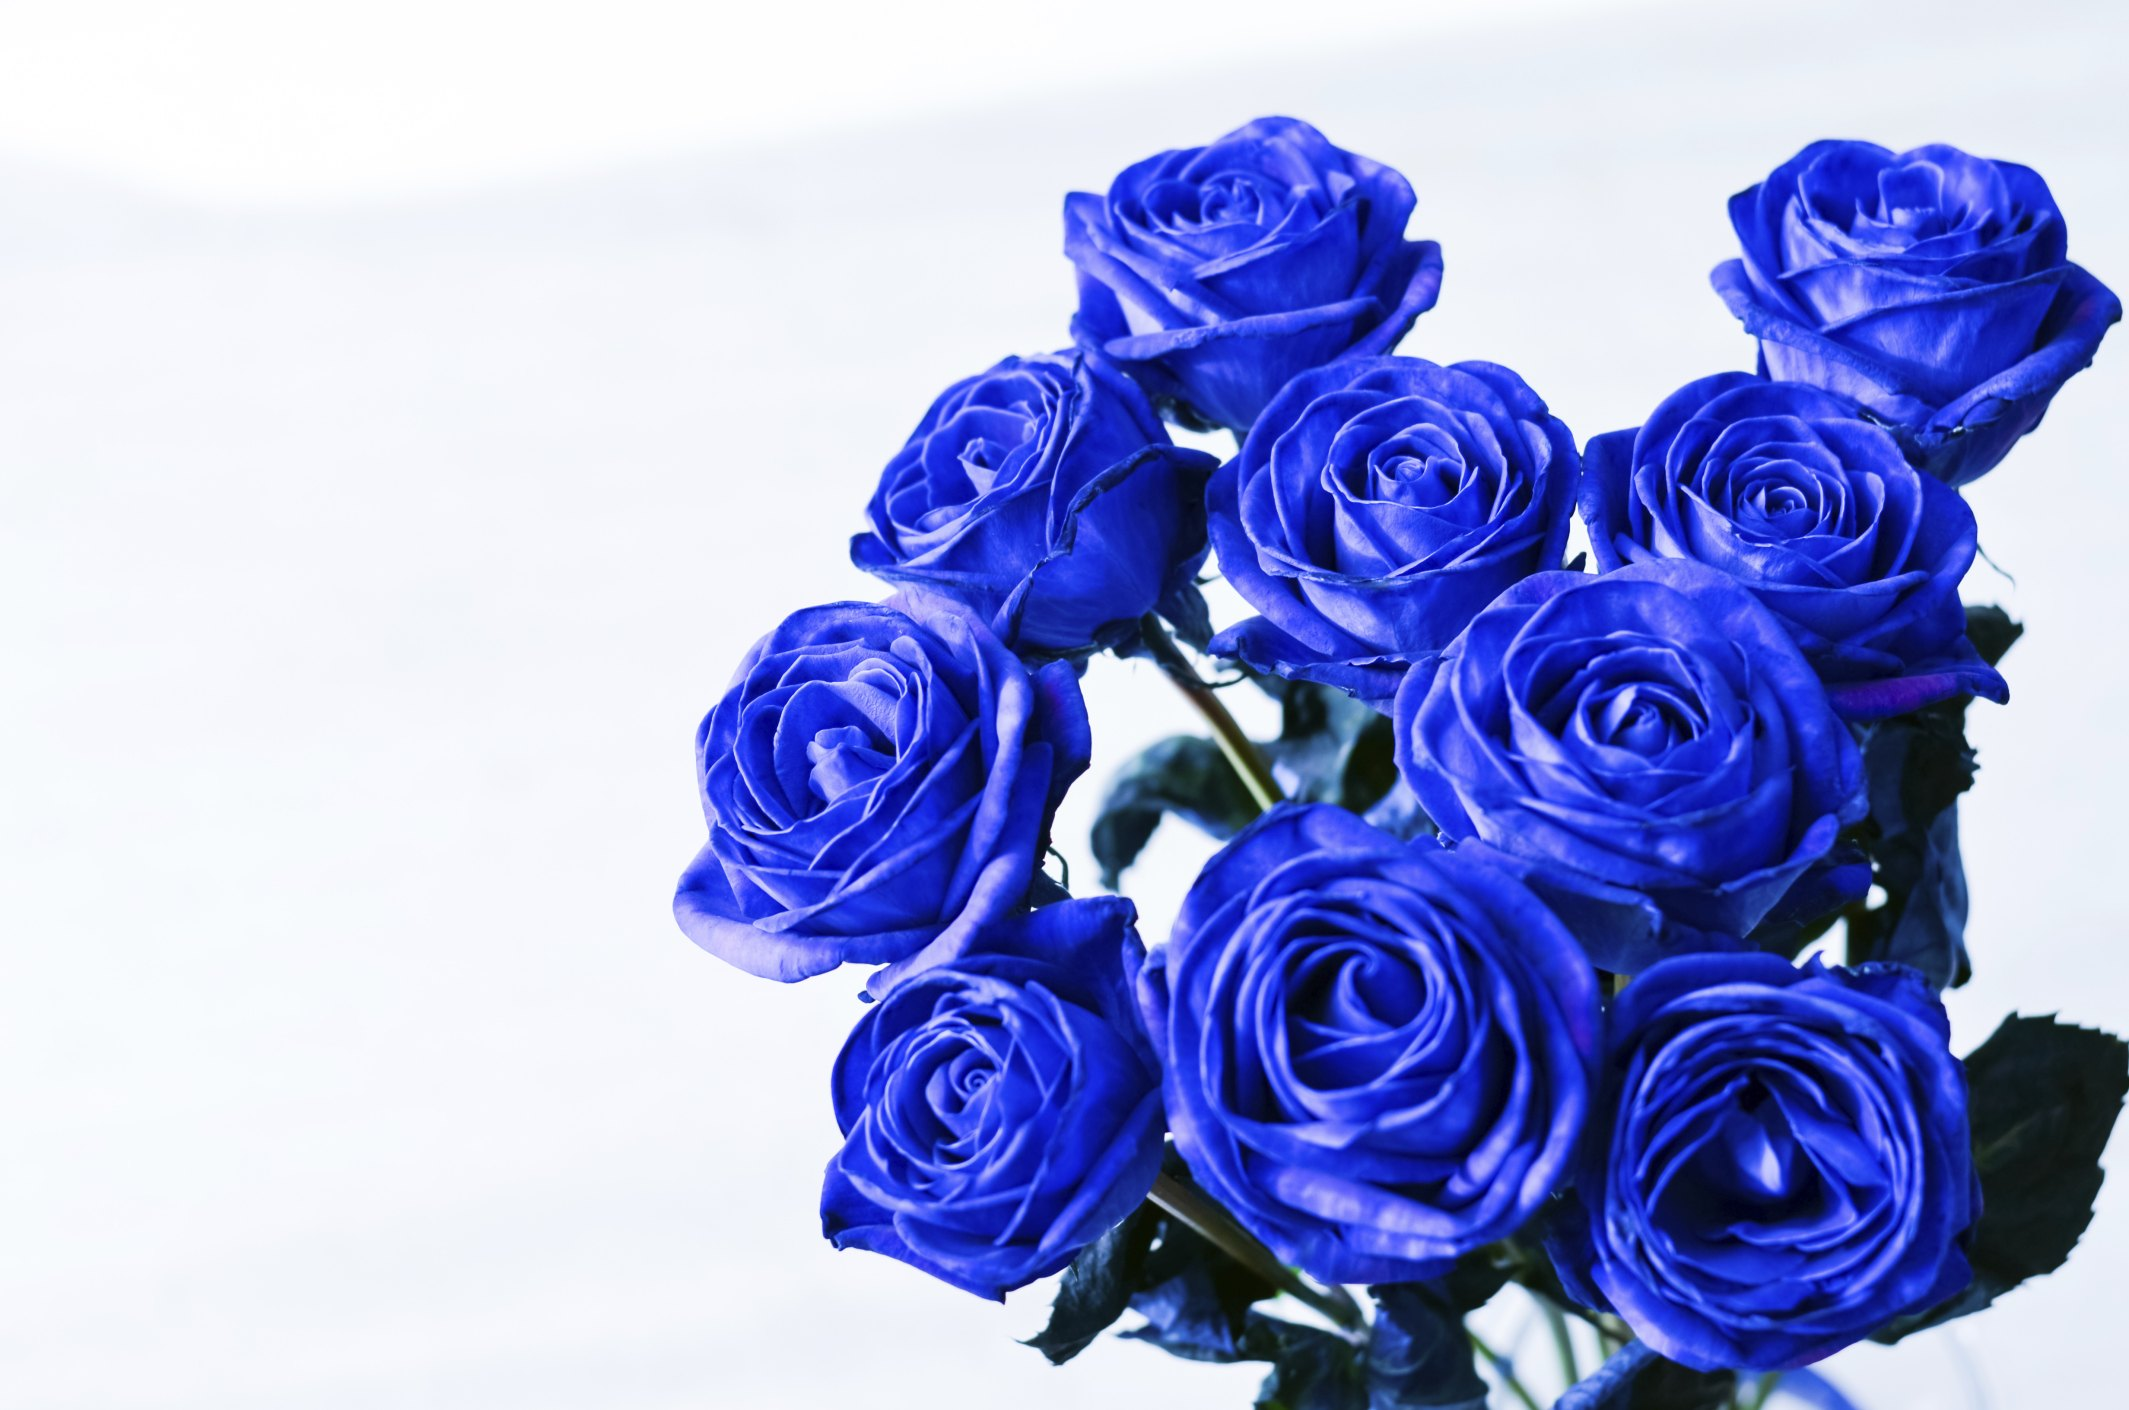 How to dye a white rose a different color ehow for Do black roses really exist